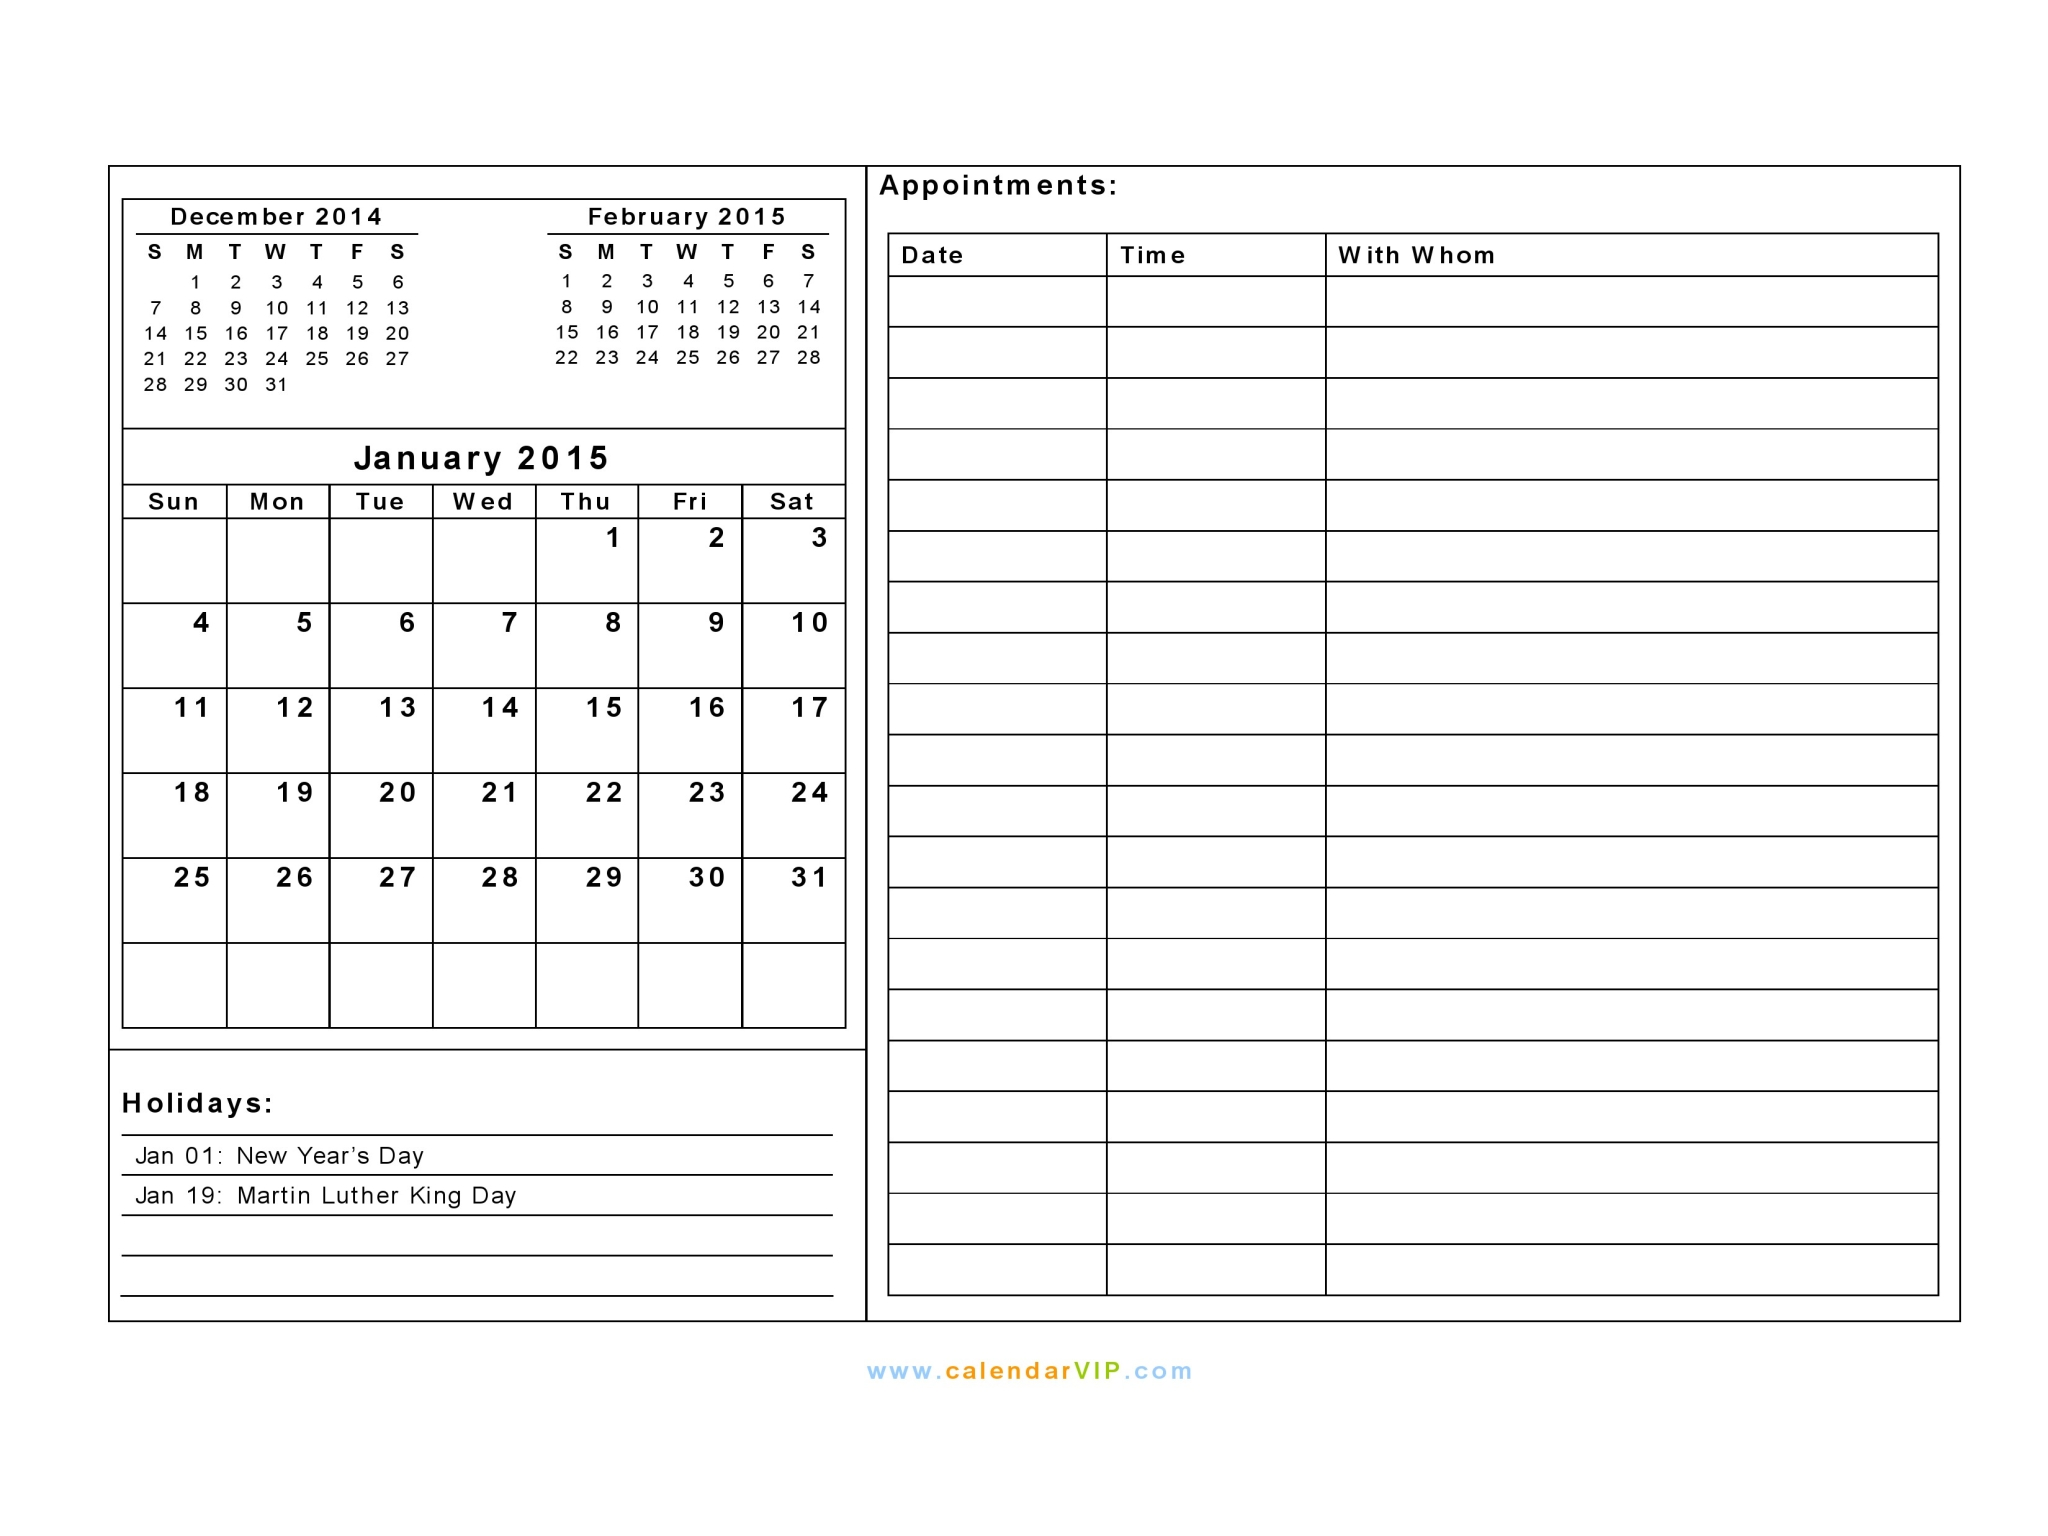 January 2015 Calendar - Blank Printable Calendar Template in PDF Word ...